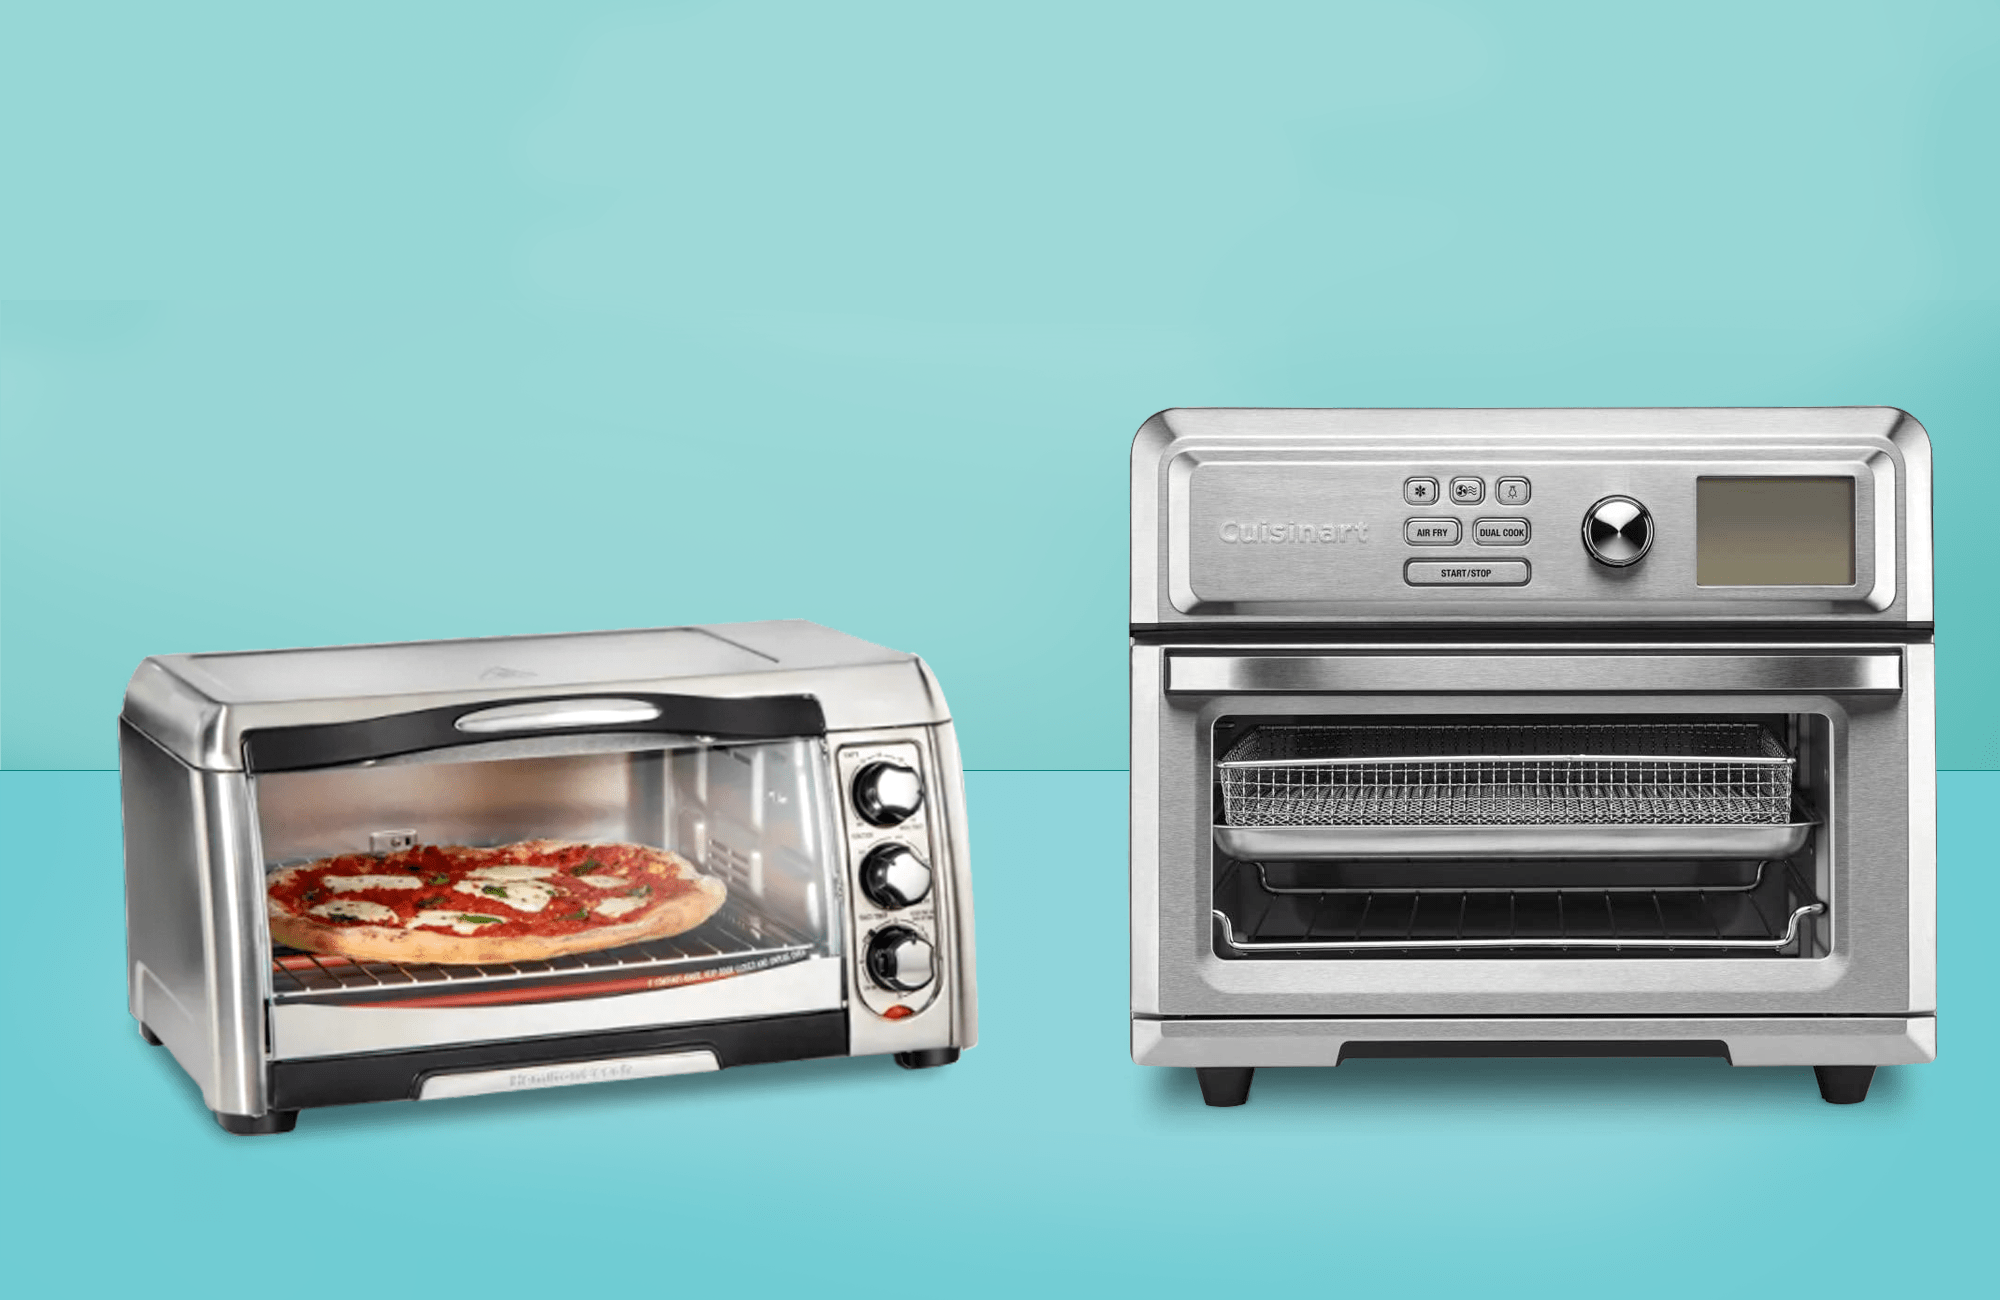 6 best air fryer toaster ovens of 2021